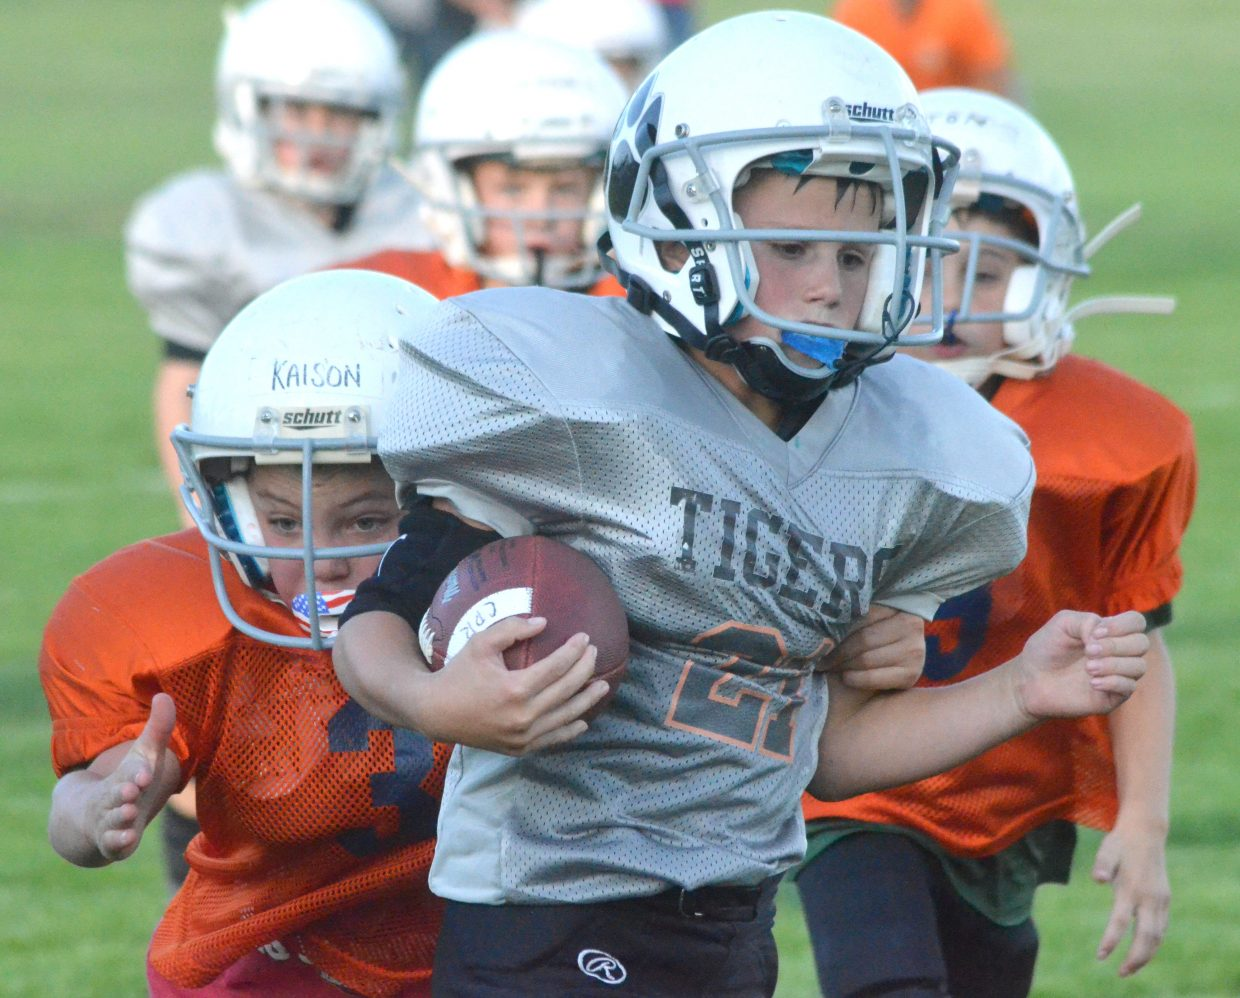 The Hayden Tigers lead the third- and fourth-grade division of Doak Walker tackle football and will play for the championship Wednesday, Sept. 26 at Moffat County High School.